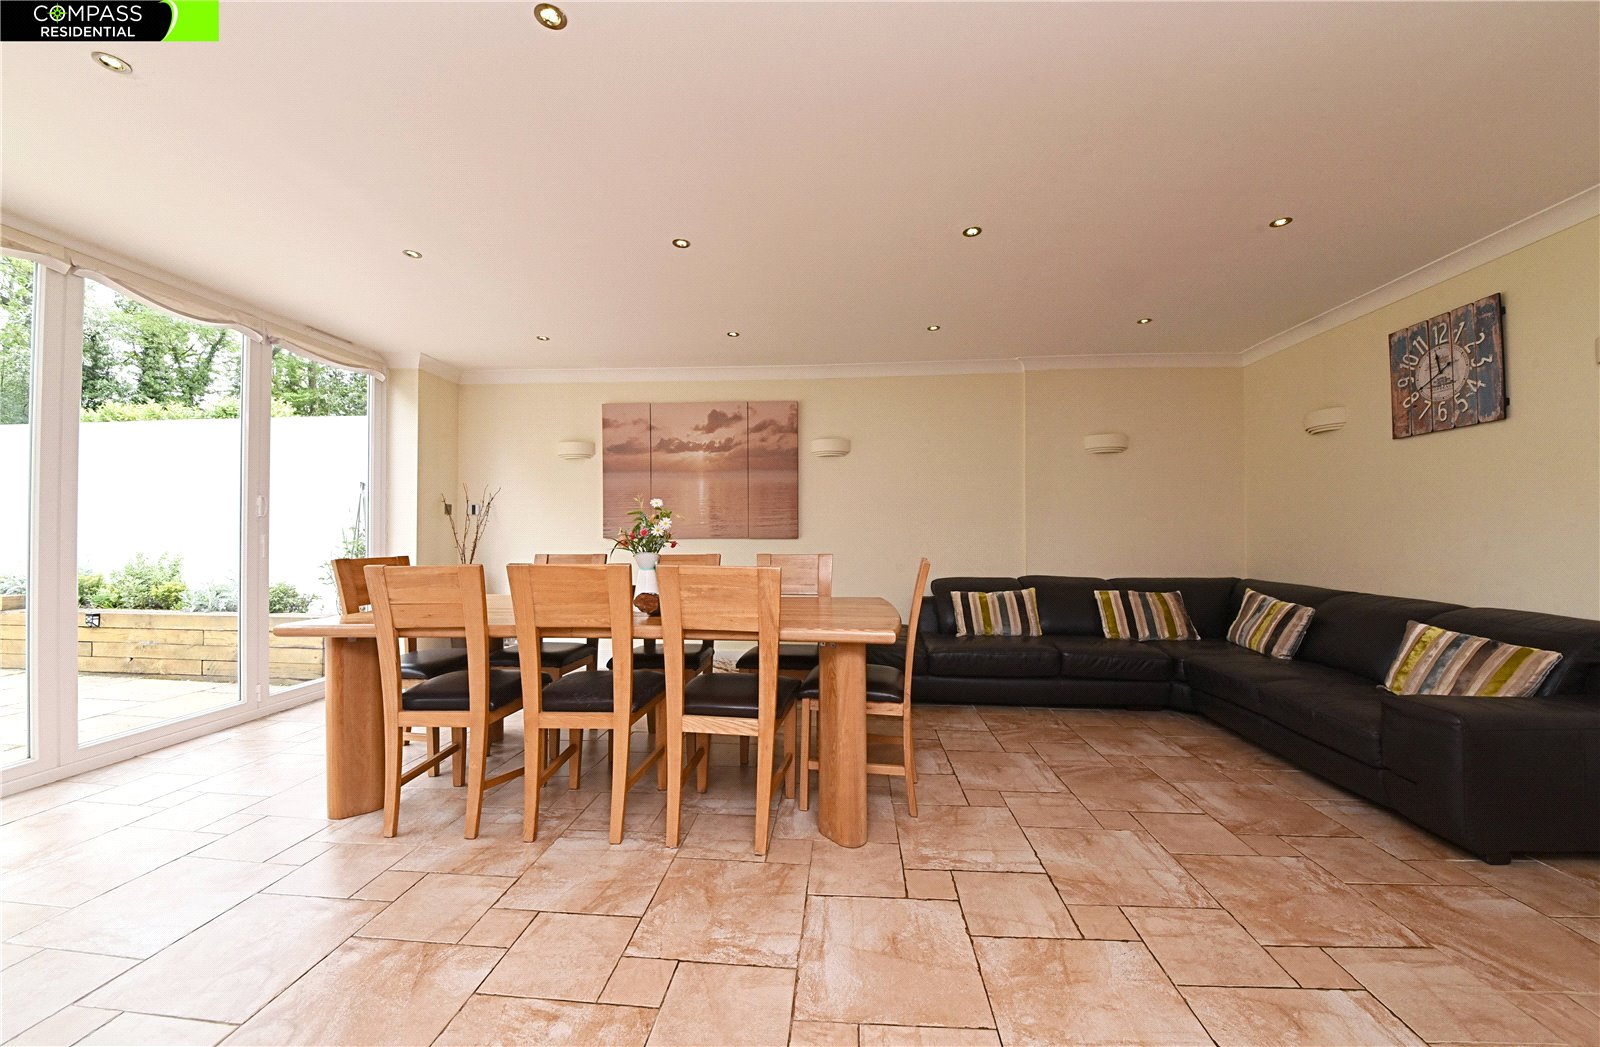 4 bed house for sale in Stanmore, HA7 3AZ 7